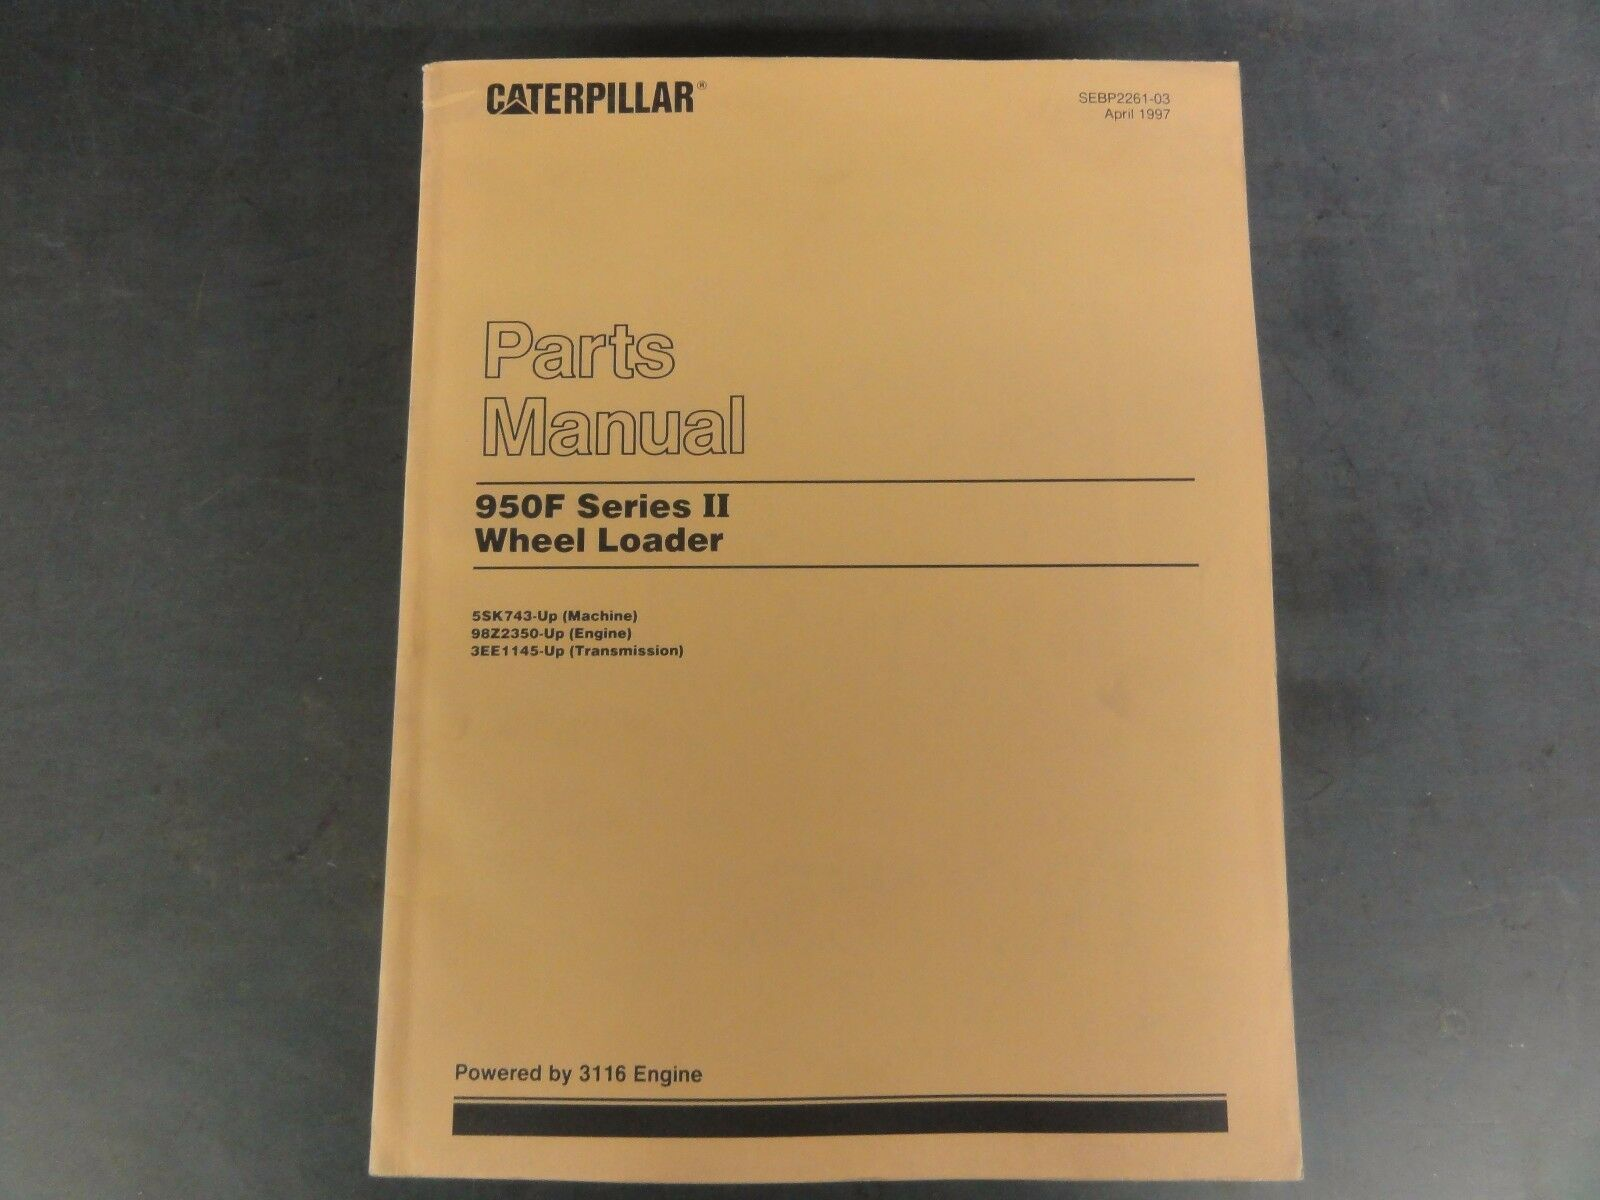 Caterpillar 950F Series II Wheel Loader Parts Manual 5SK743-Up 1 of 6Only 1  available ...